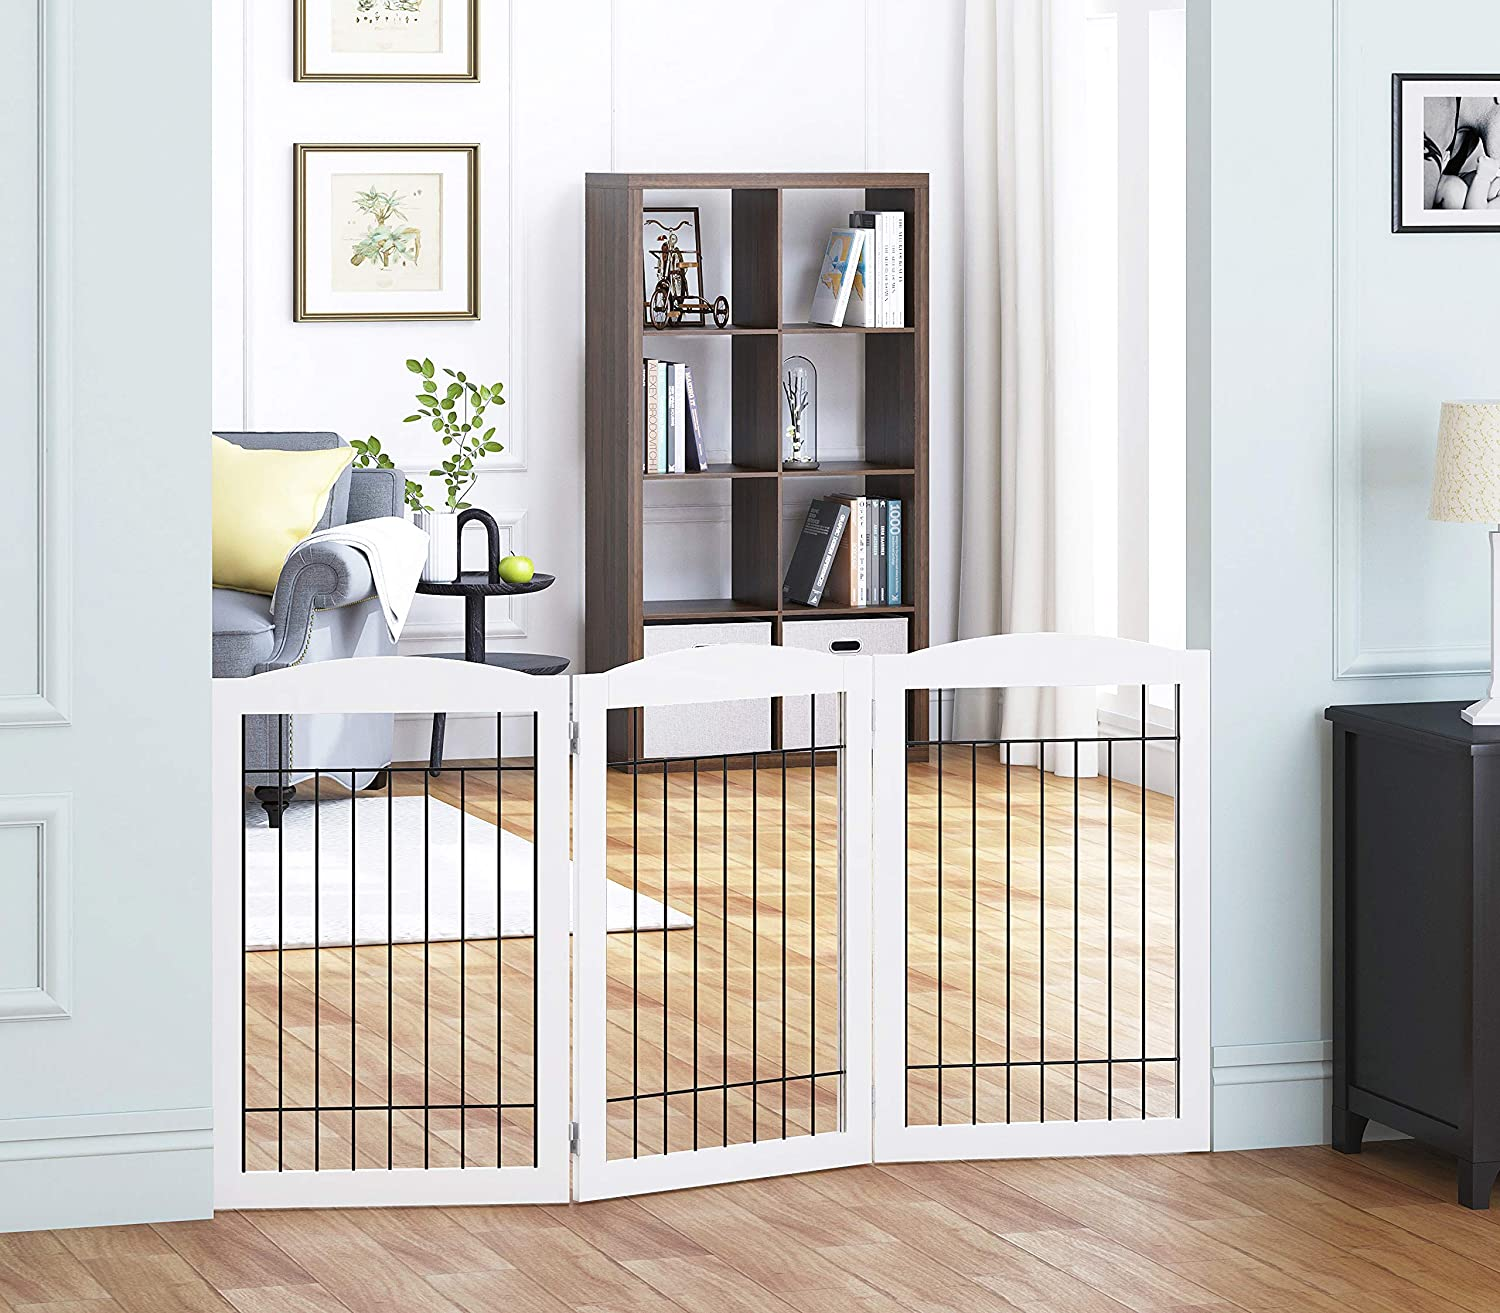 Spirich Freestanding Wire Pet Gate for Dogs, 60 inches Extra Wide, 30 inches Tall Dog Gate for The Houes, Doorway, Stairs, Pet Puppy Safety Fence, White- 3 Panels(No Include Support Feet)